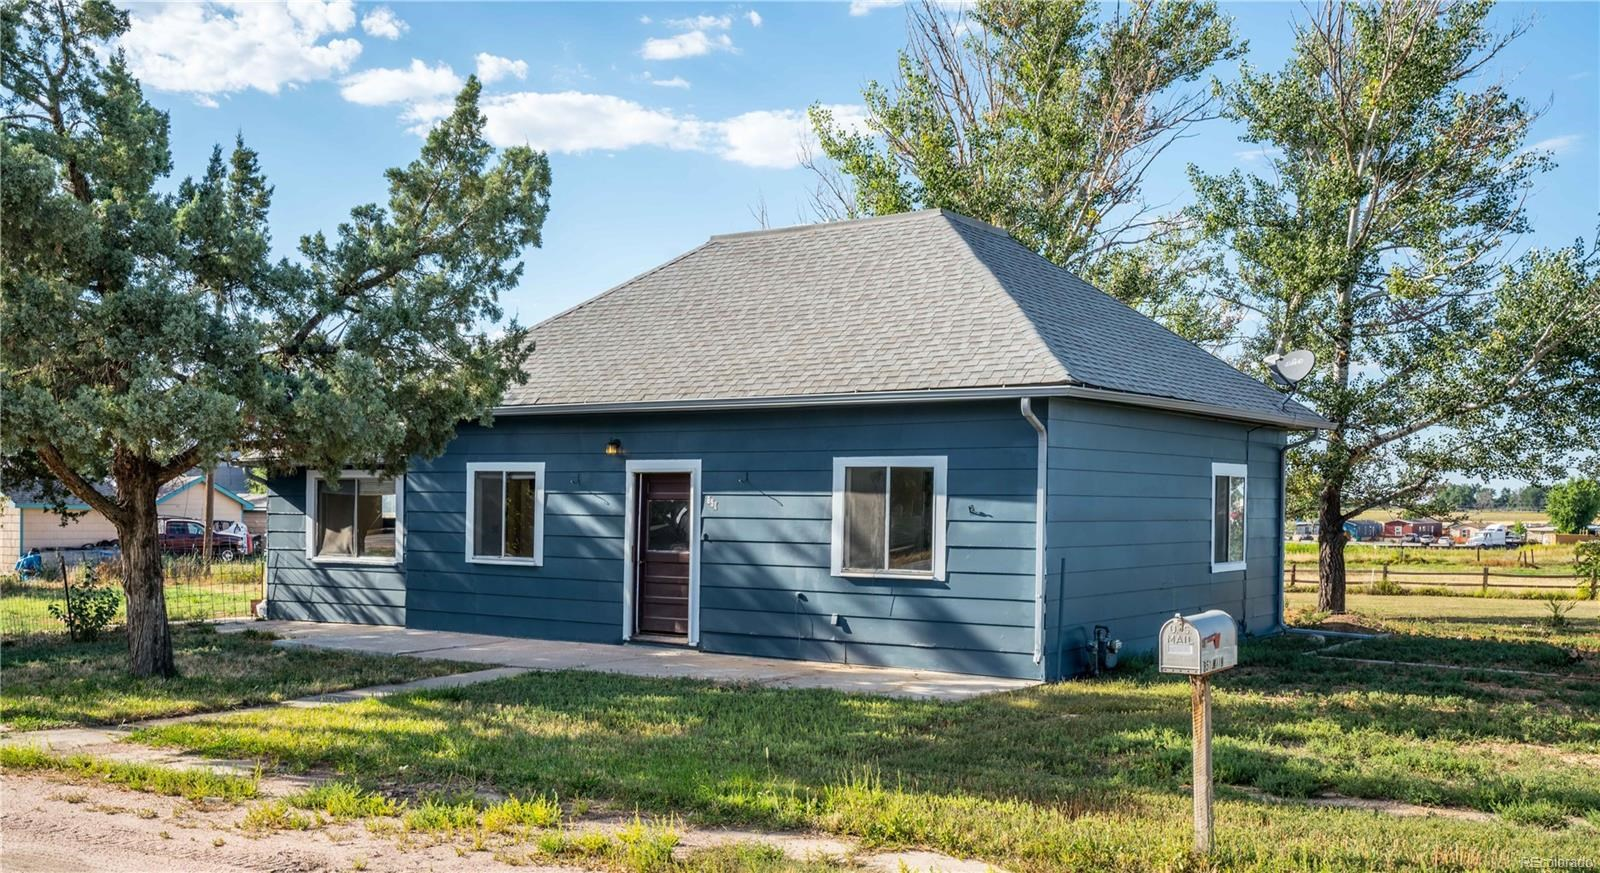 MLS# 8415576 - 1 - 851 Main Street, Hudson, CO 80642